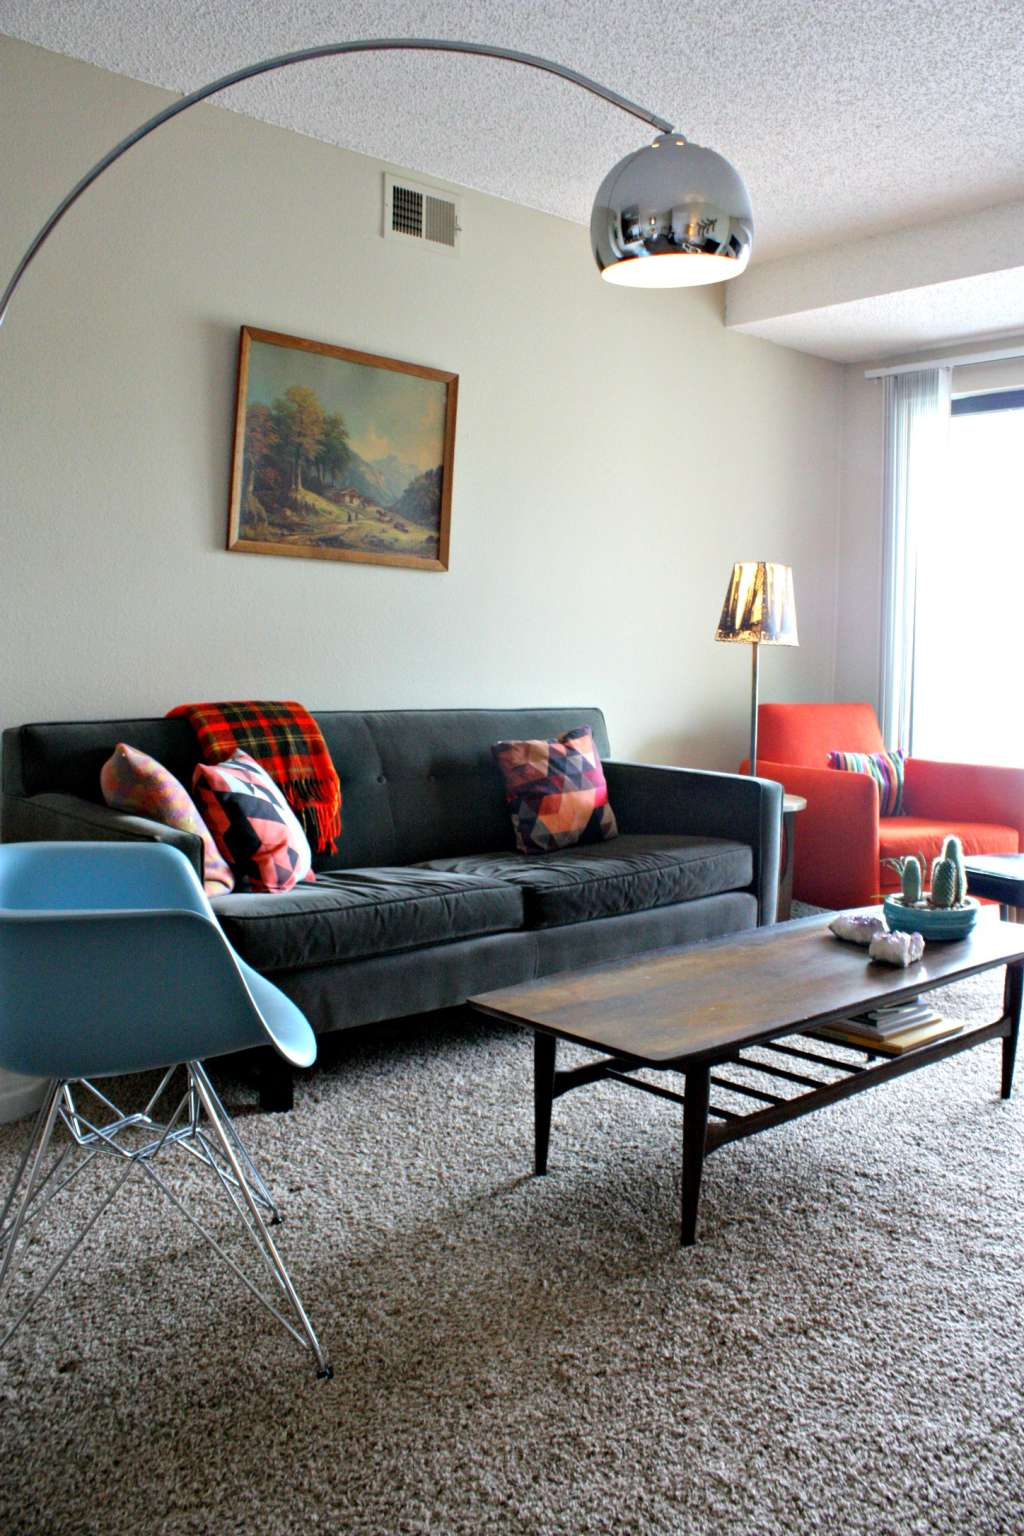 IKEA Hacks & Thrift Finds Personalize a Generic Denver Apartment